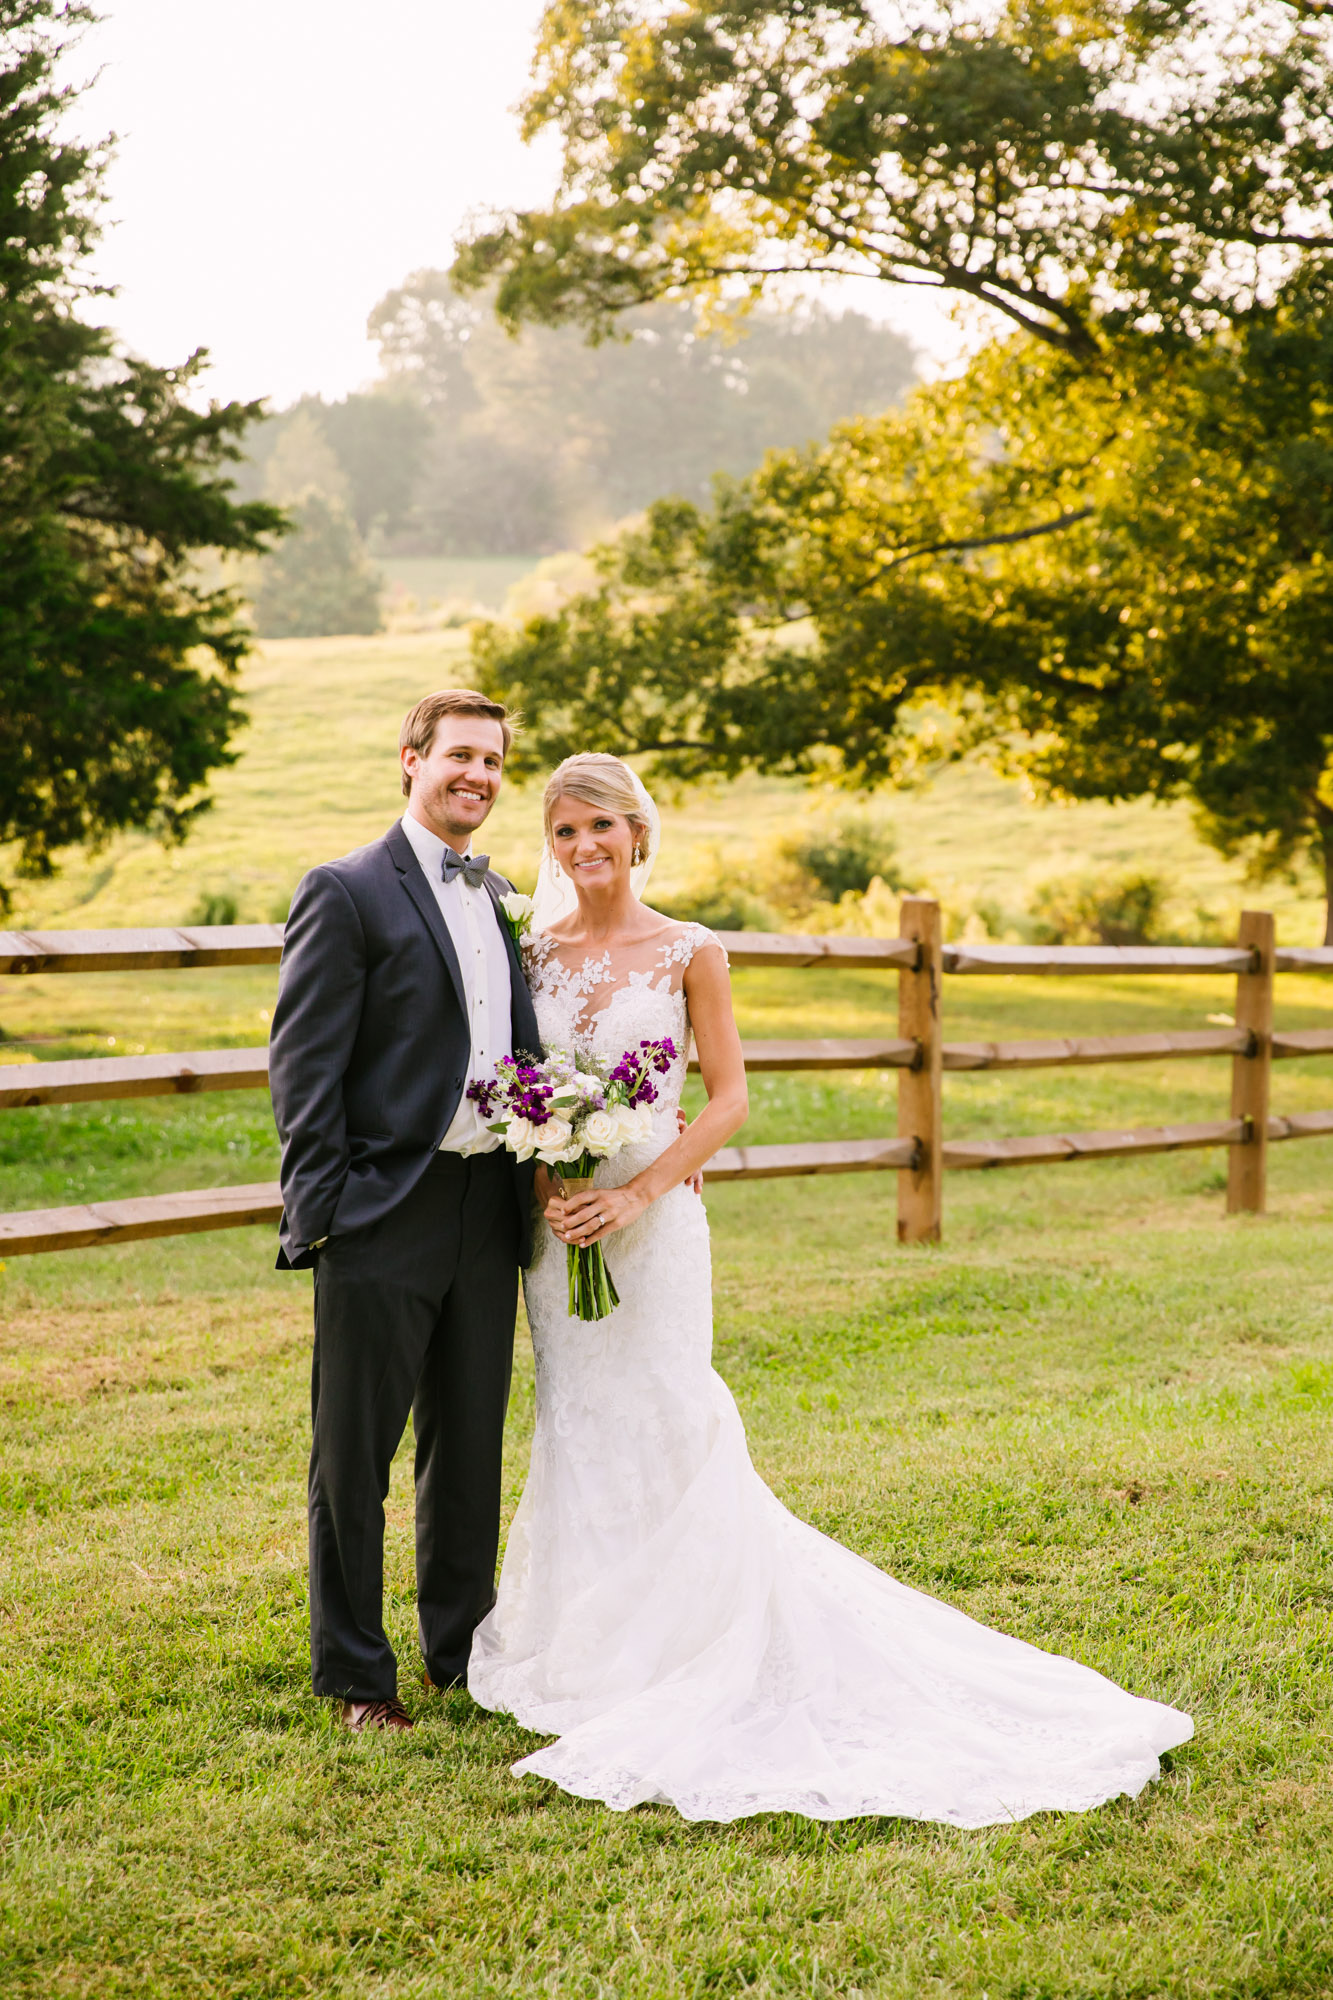 Waynesville, NC Wedding Photography | Bride and Groom Portrait